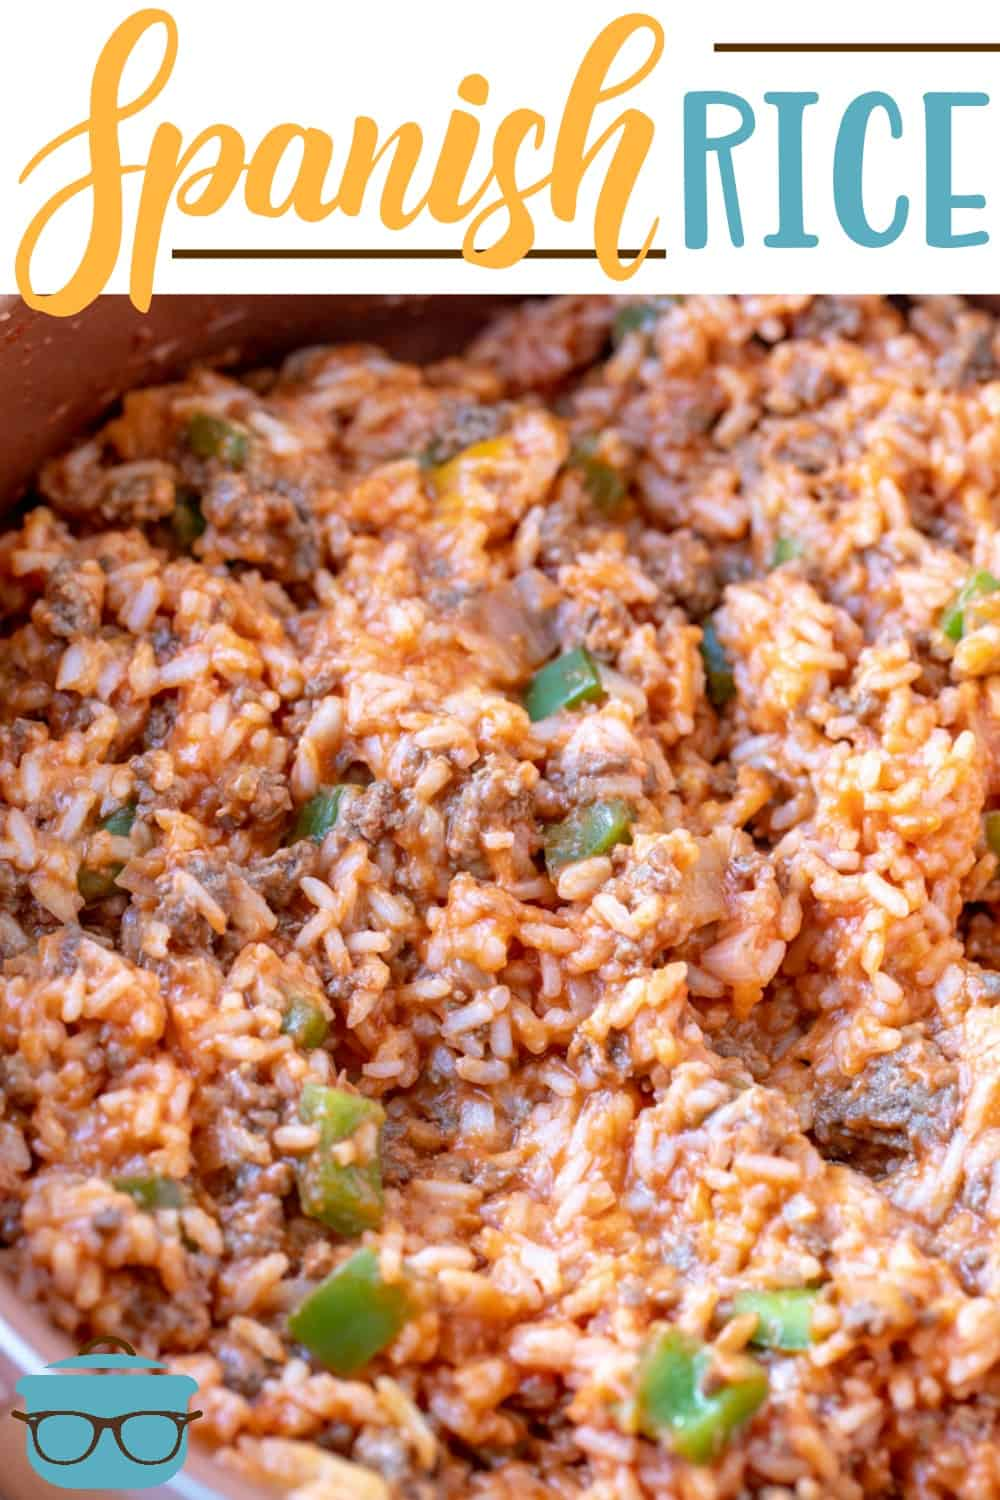 This Spanish Rice recipe is stuffed with cooked rice, tomato sauce, ground beef, peppers, onions and seasoning. Delicious comfort food!